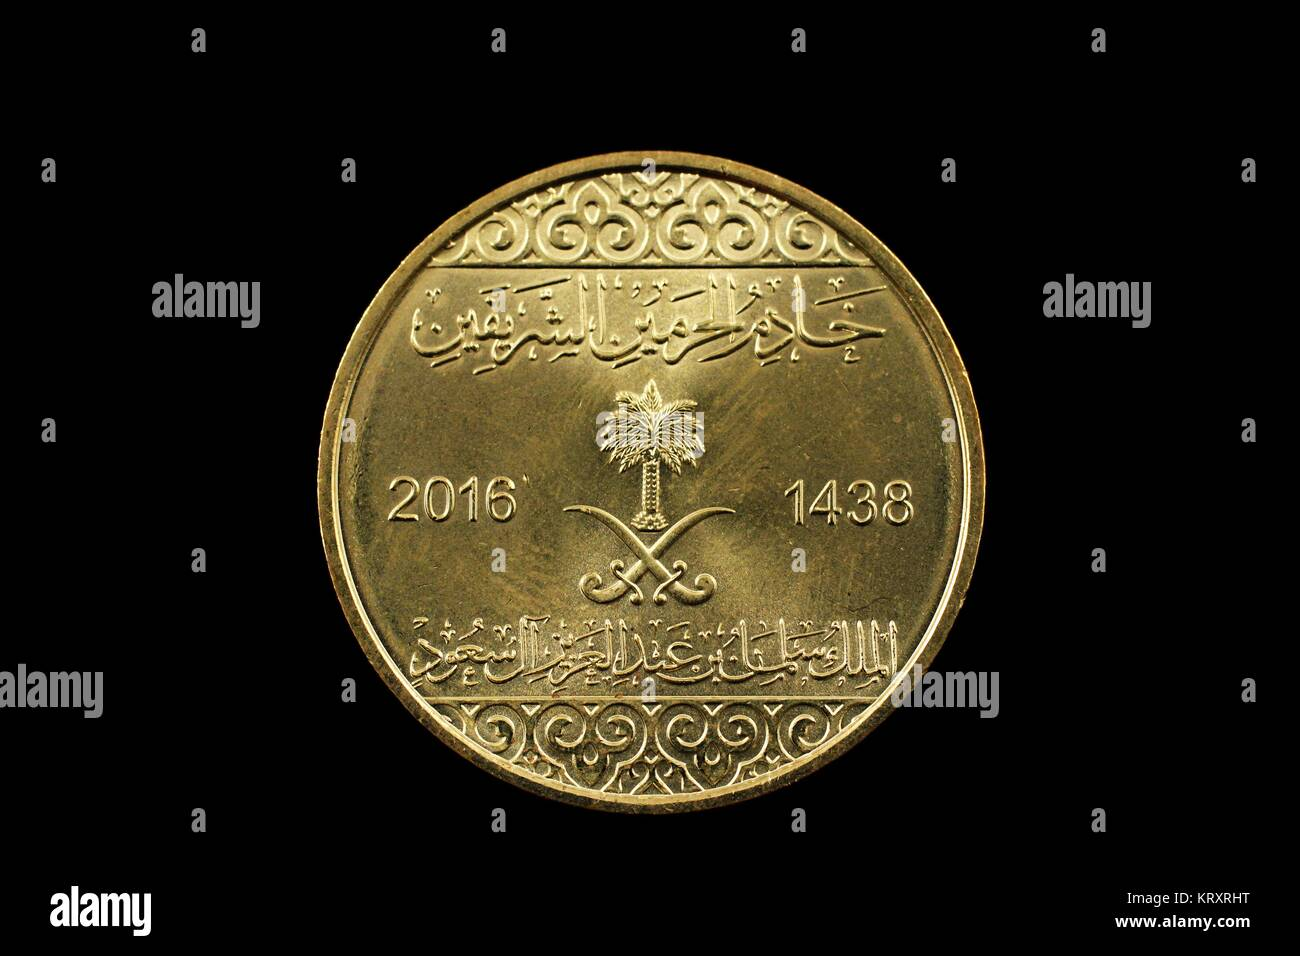 A super macro image of a gold saudi arabian coin isolated on a black background - Stock Image